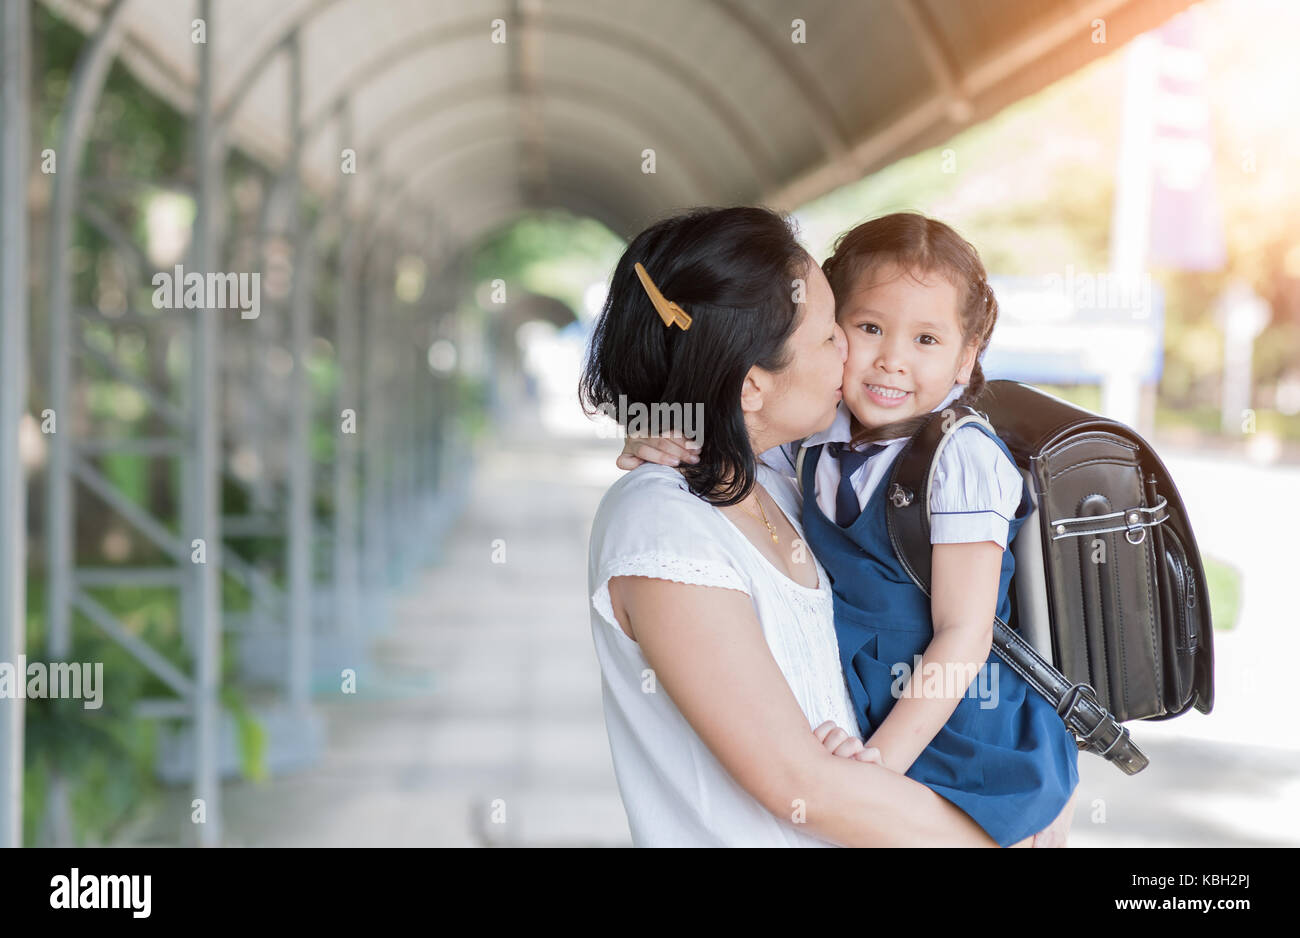 Mother kissing schoolgirl in uniform before going to school, Love and care concept - Stock Image